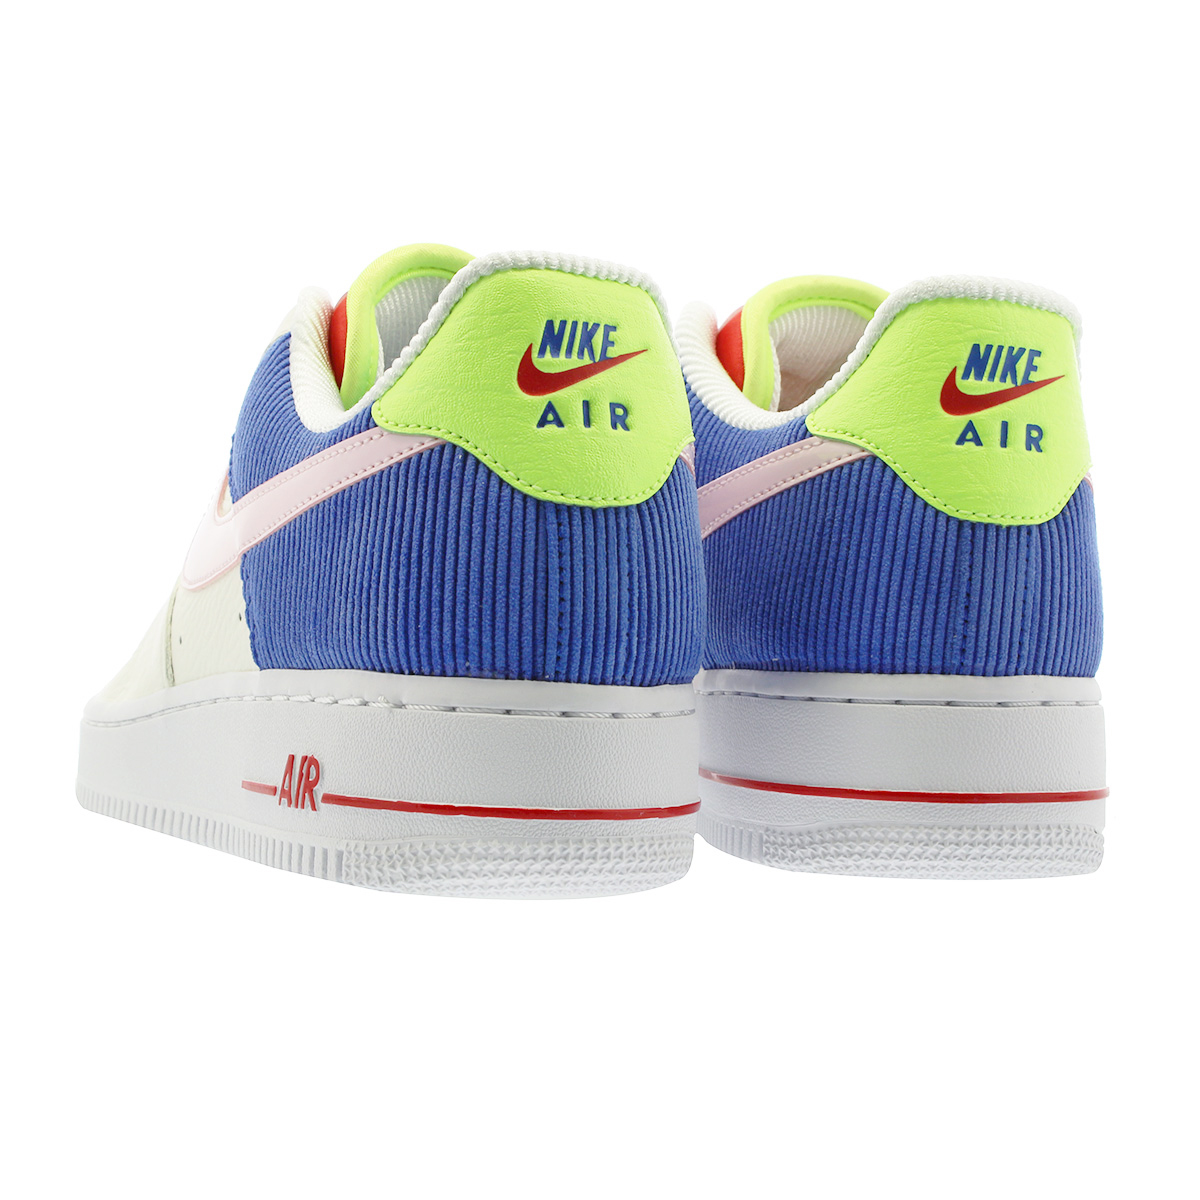 reputable site 10cfc 24575 NIKE WMNS AIR FORCE 1 LOW Nike women air force 1 low SAIL ARCTIC PINK RACER  BLUE aq4139-101